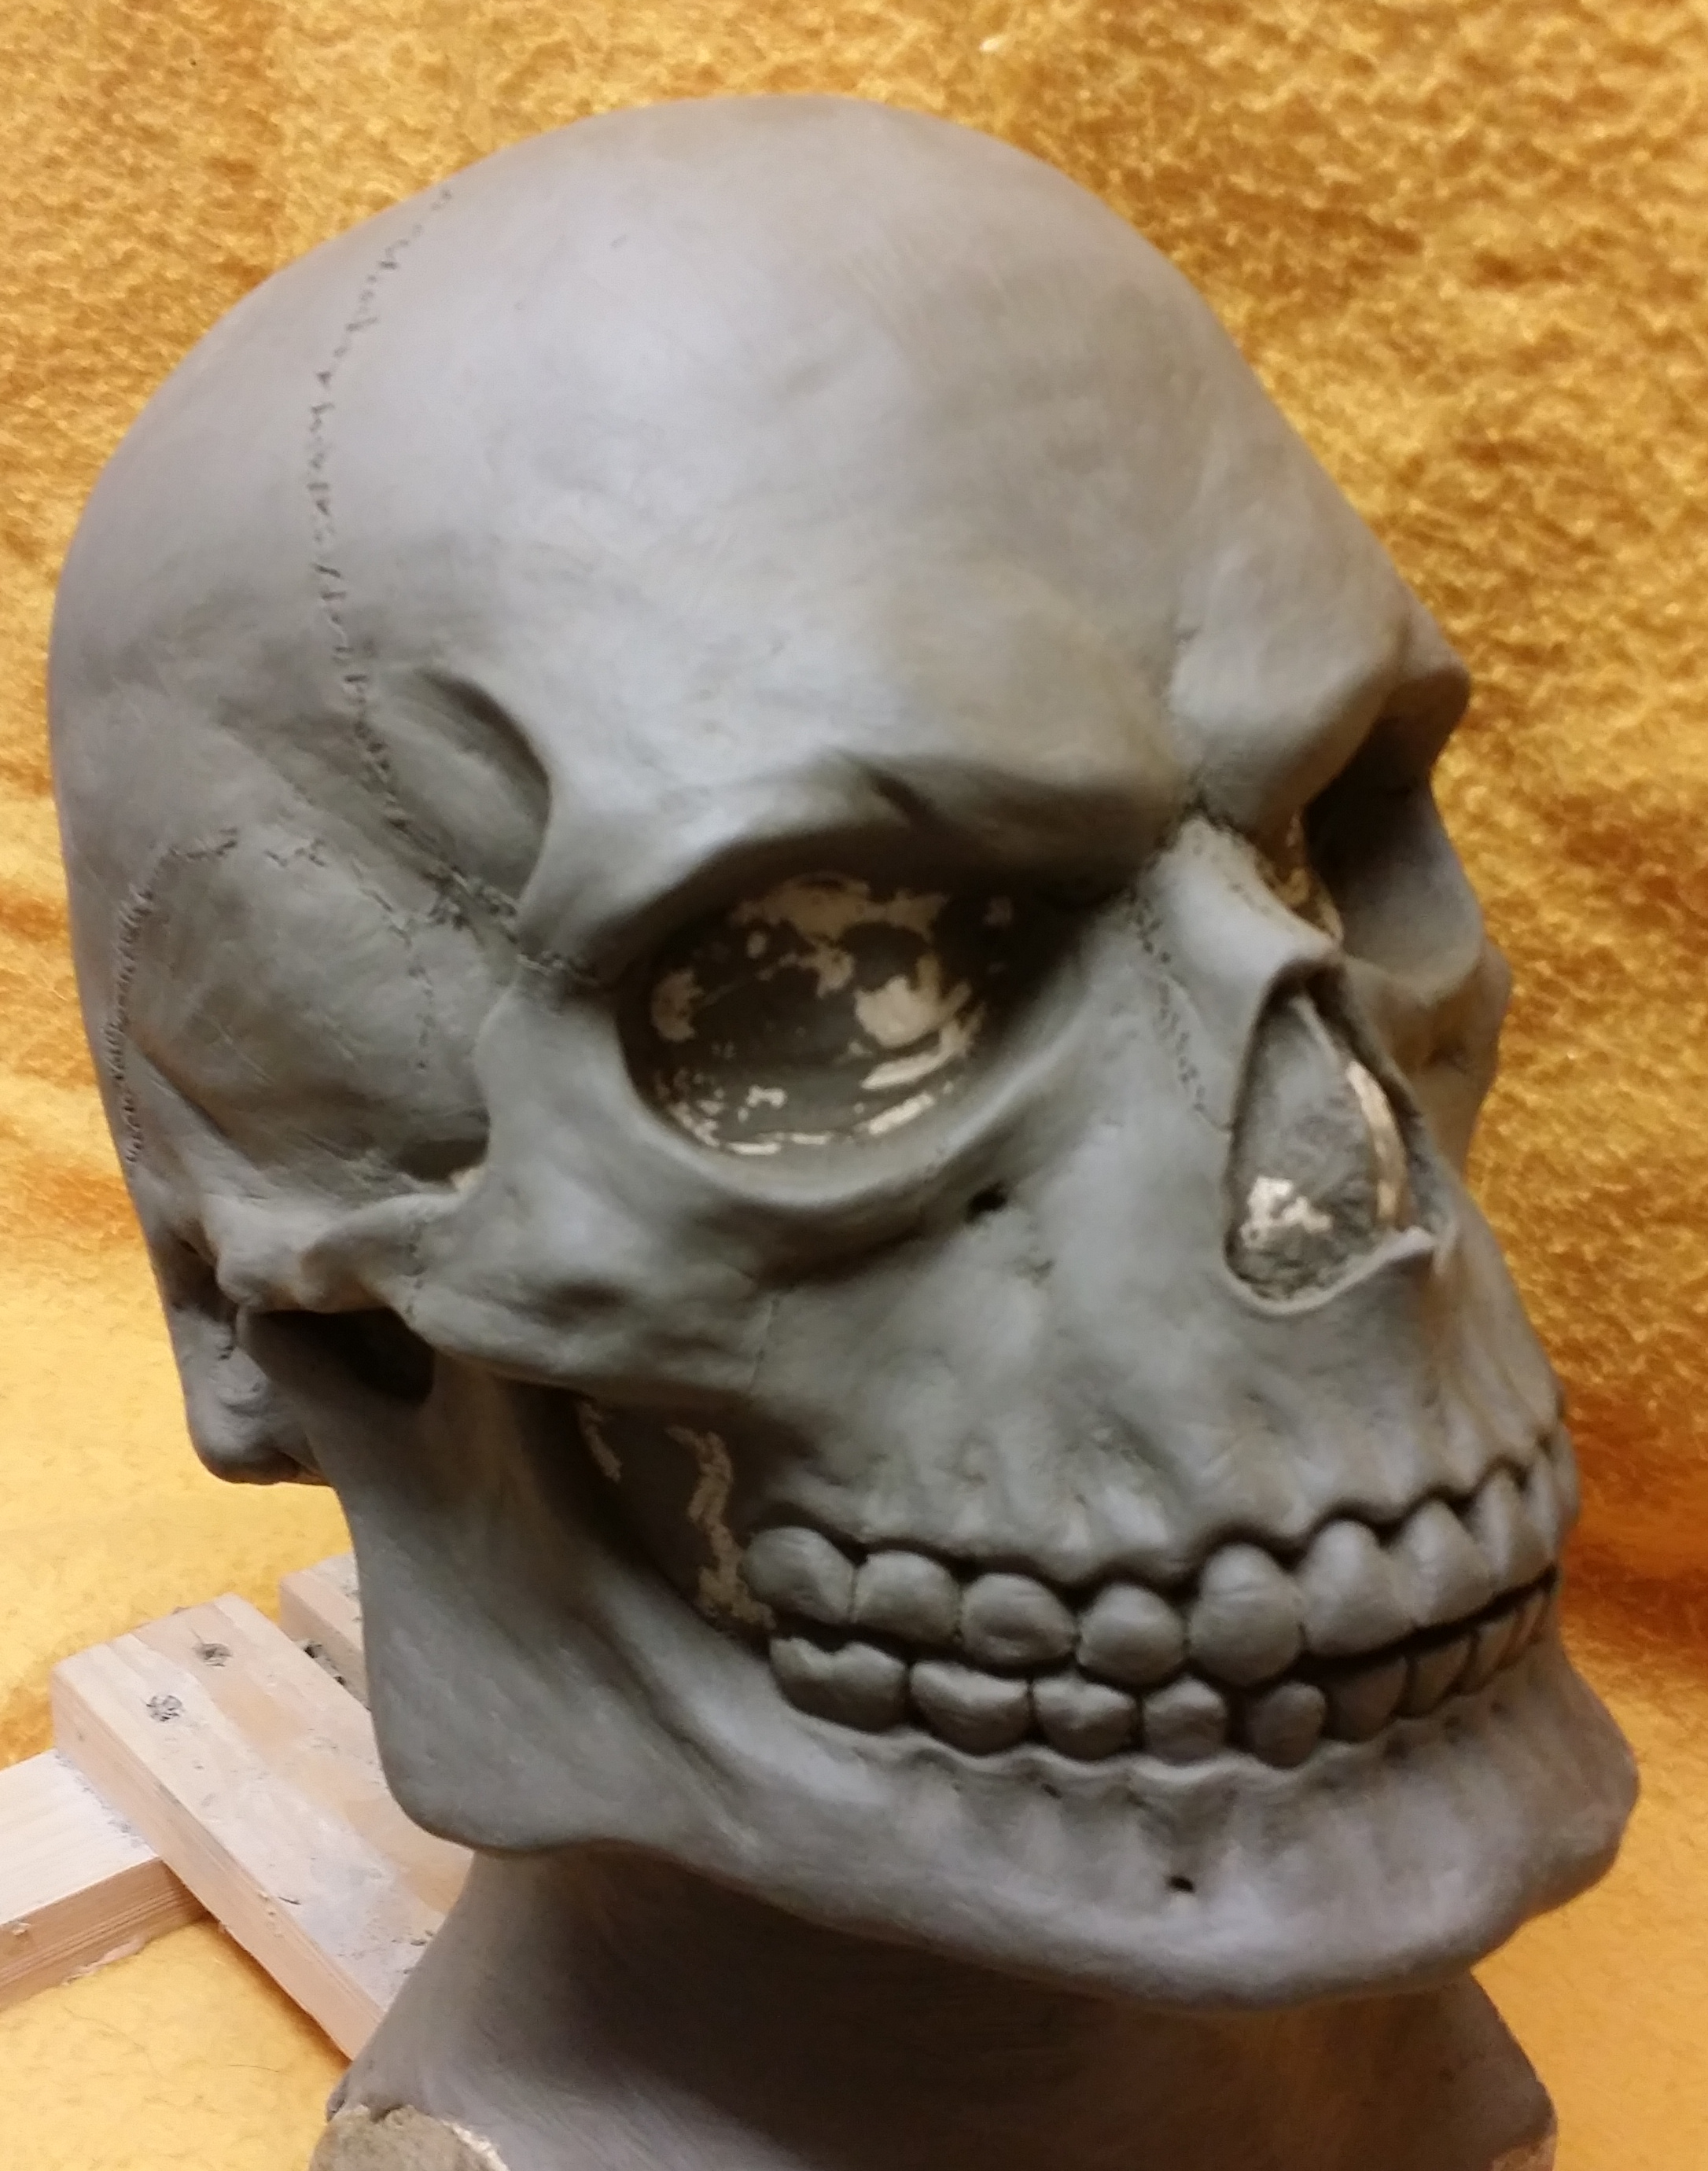 Ghost Rider Skull Mask – Andrew Blake Craft & Design